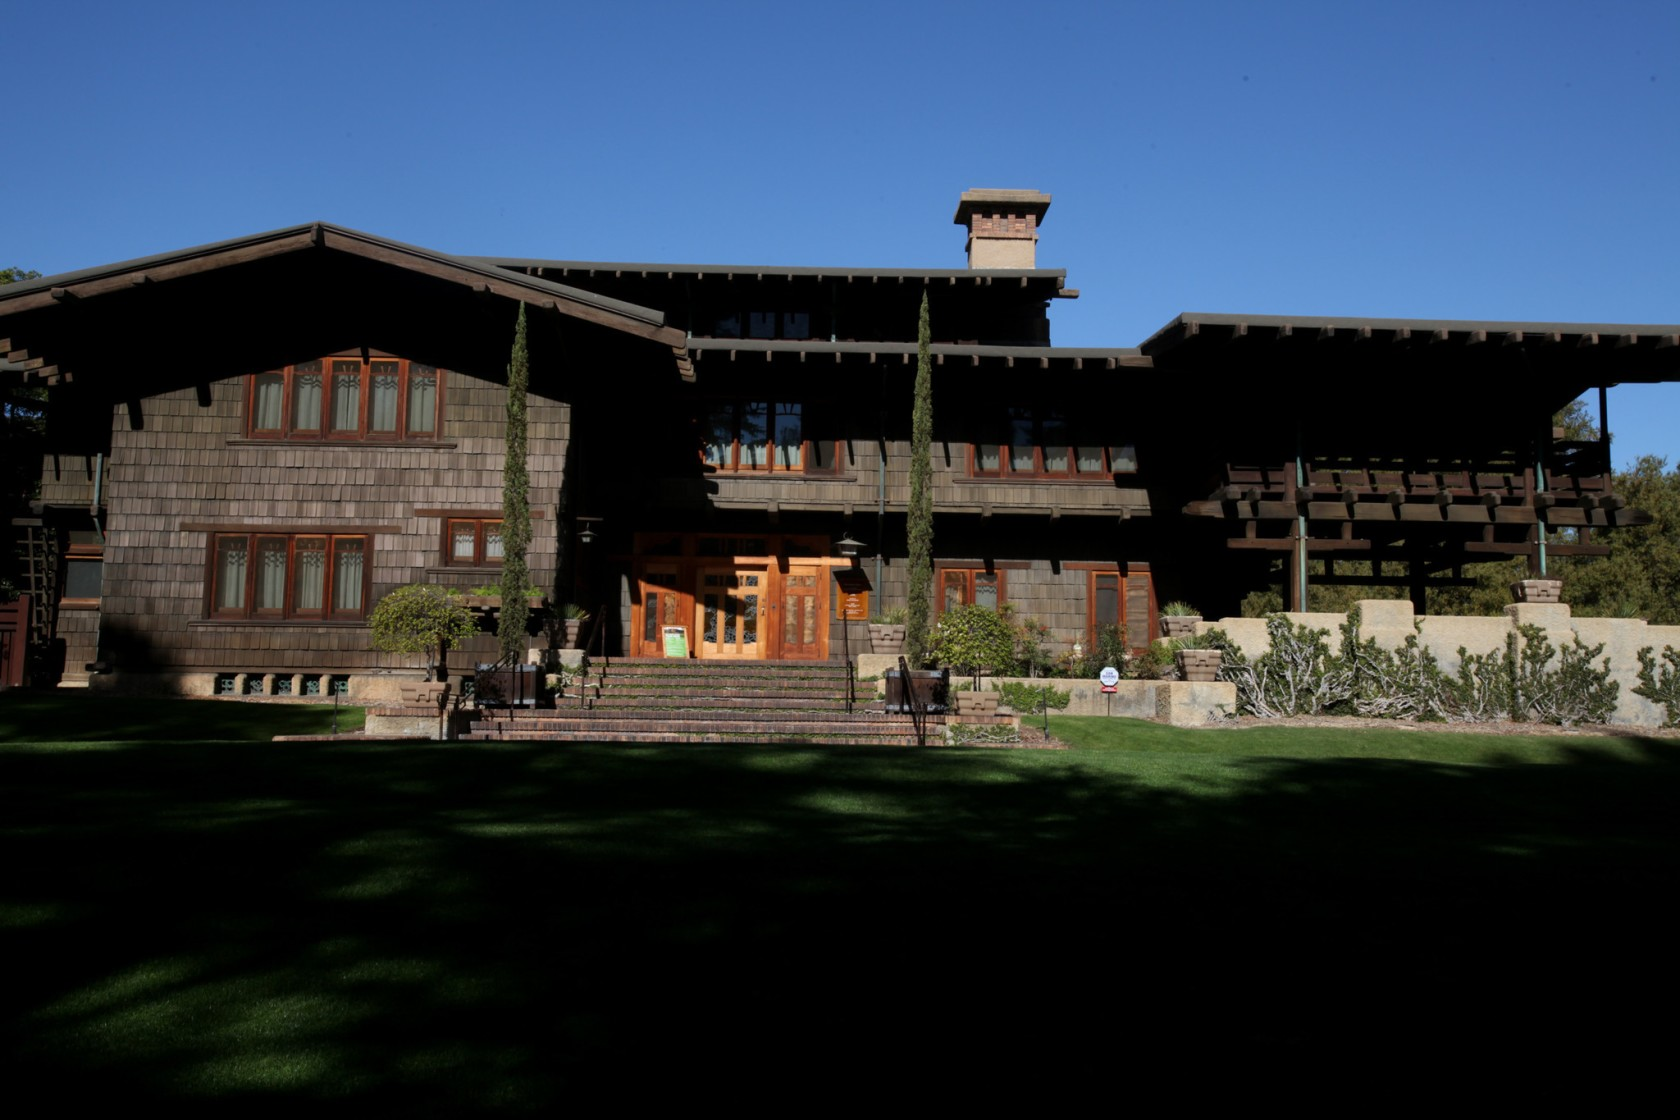 The Gamble House in Pasadena is seen in a 2016 file photo. (Credit: Francine Orr / Los Angeles Times)